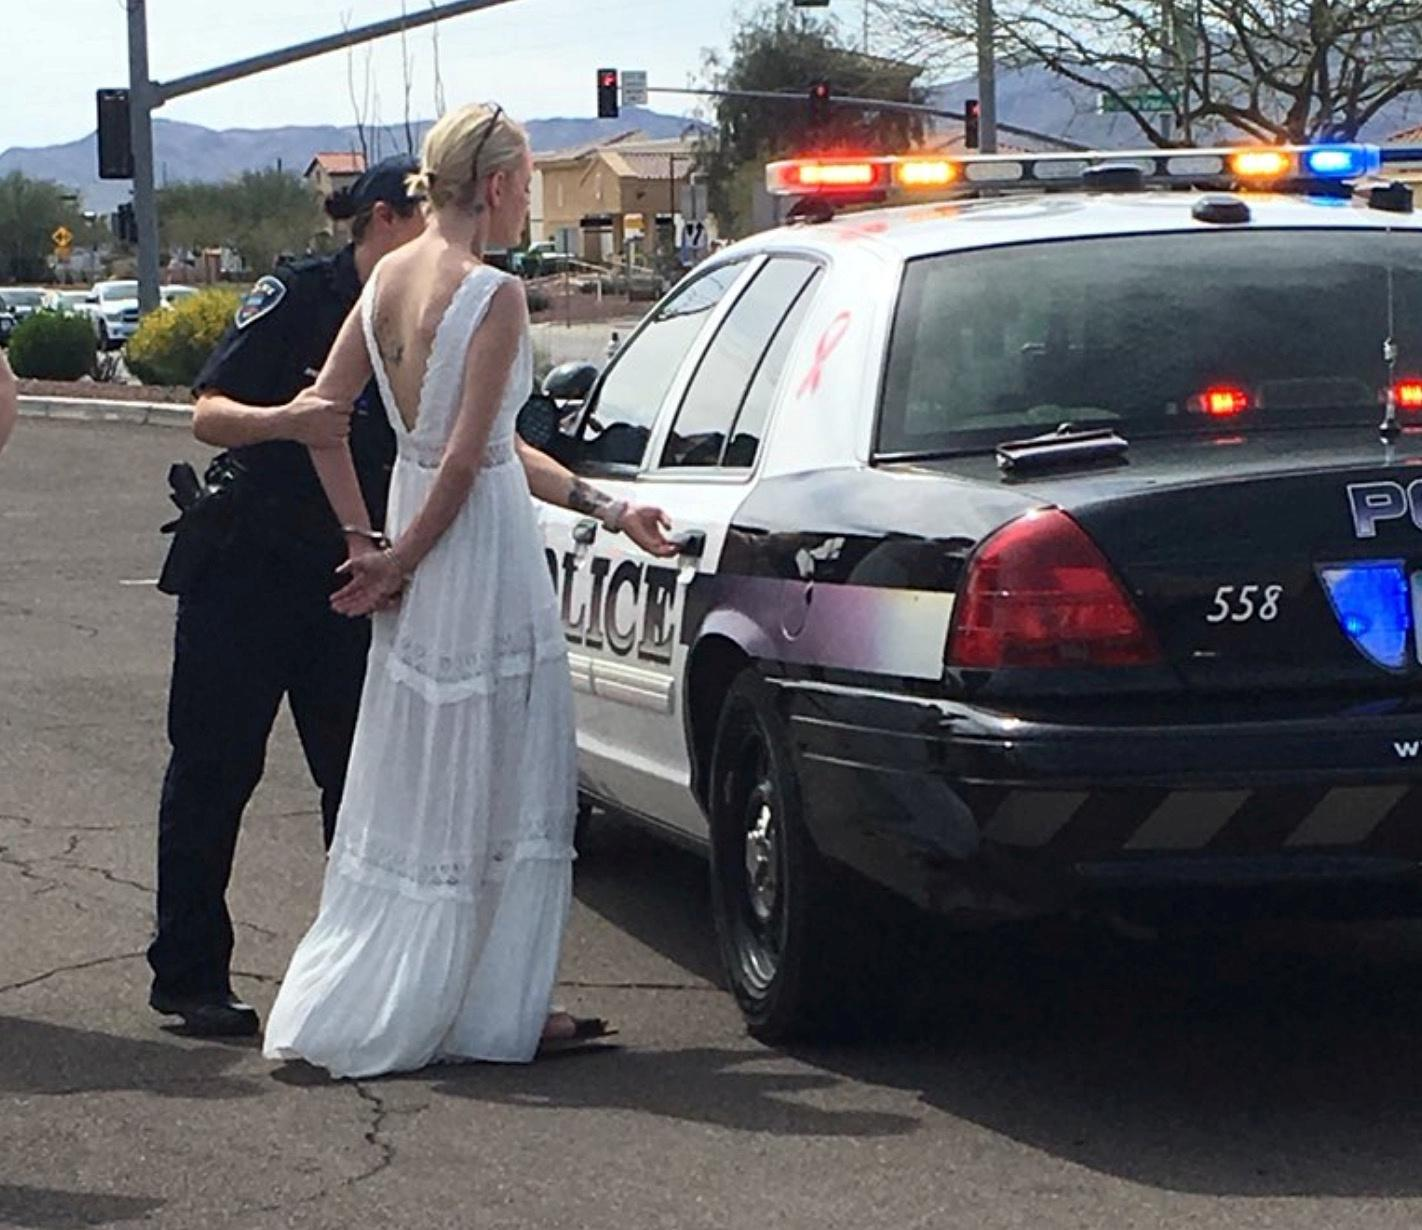 Ex Police Car Auctions >> Arizona Bride Arrested For DUI While En Route To Her Wedding